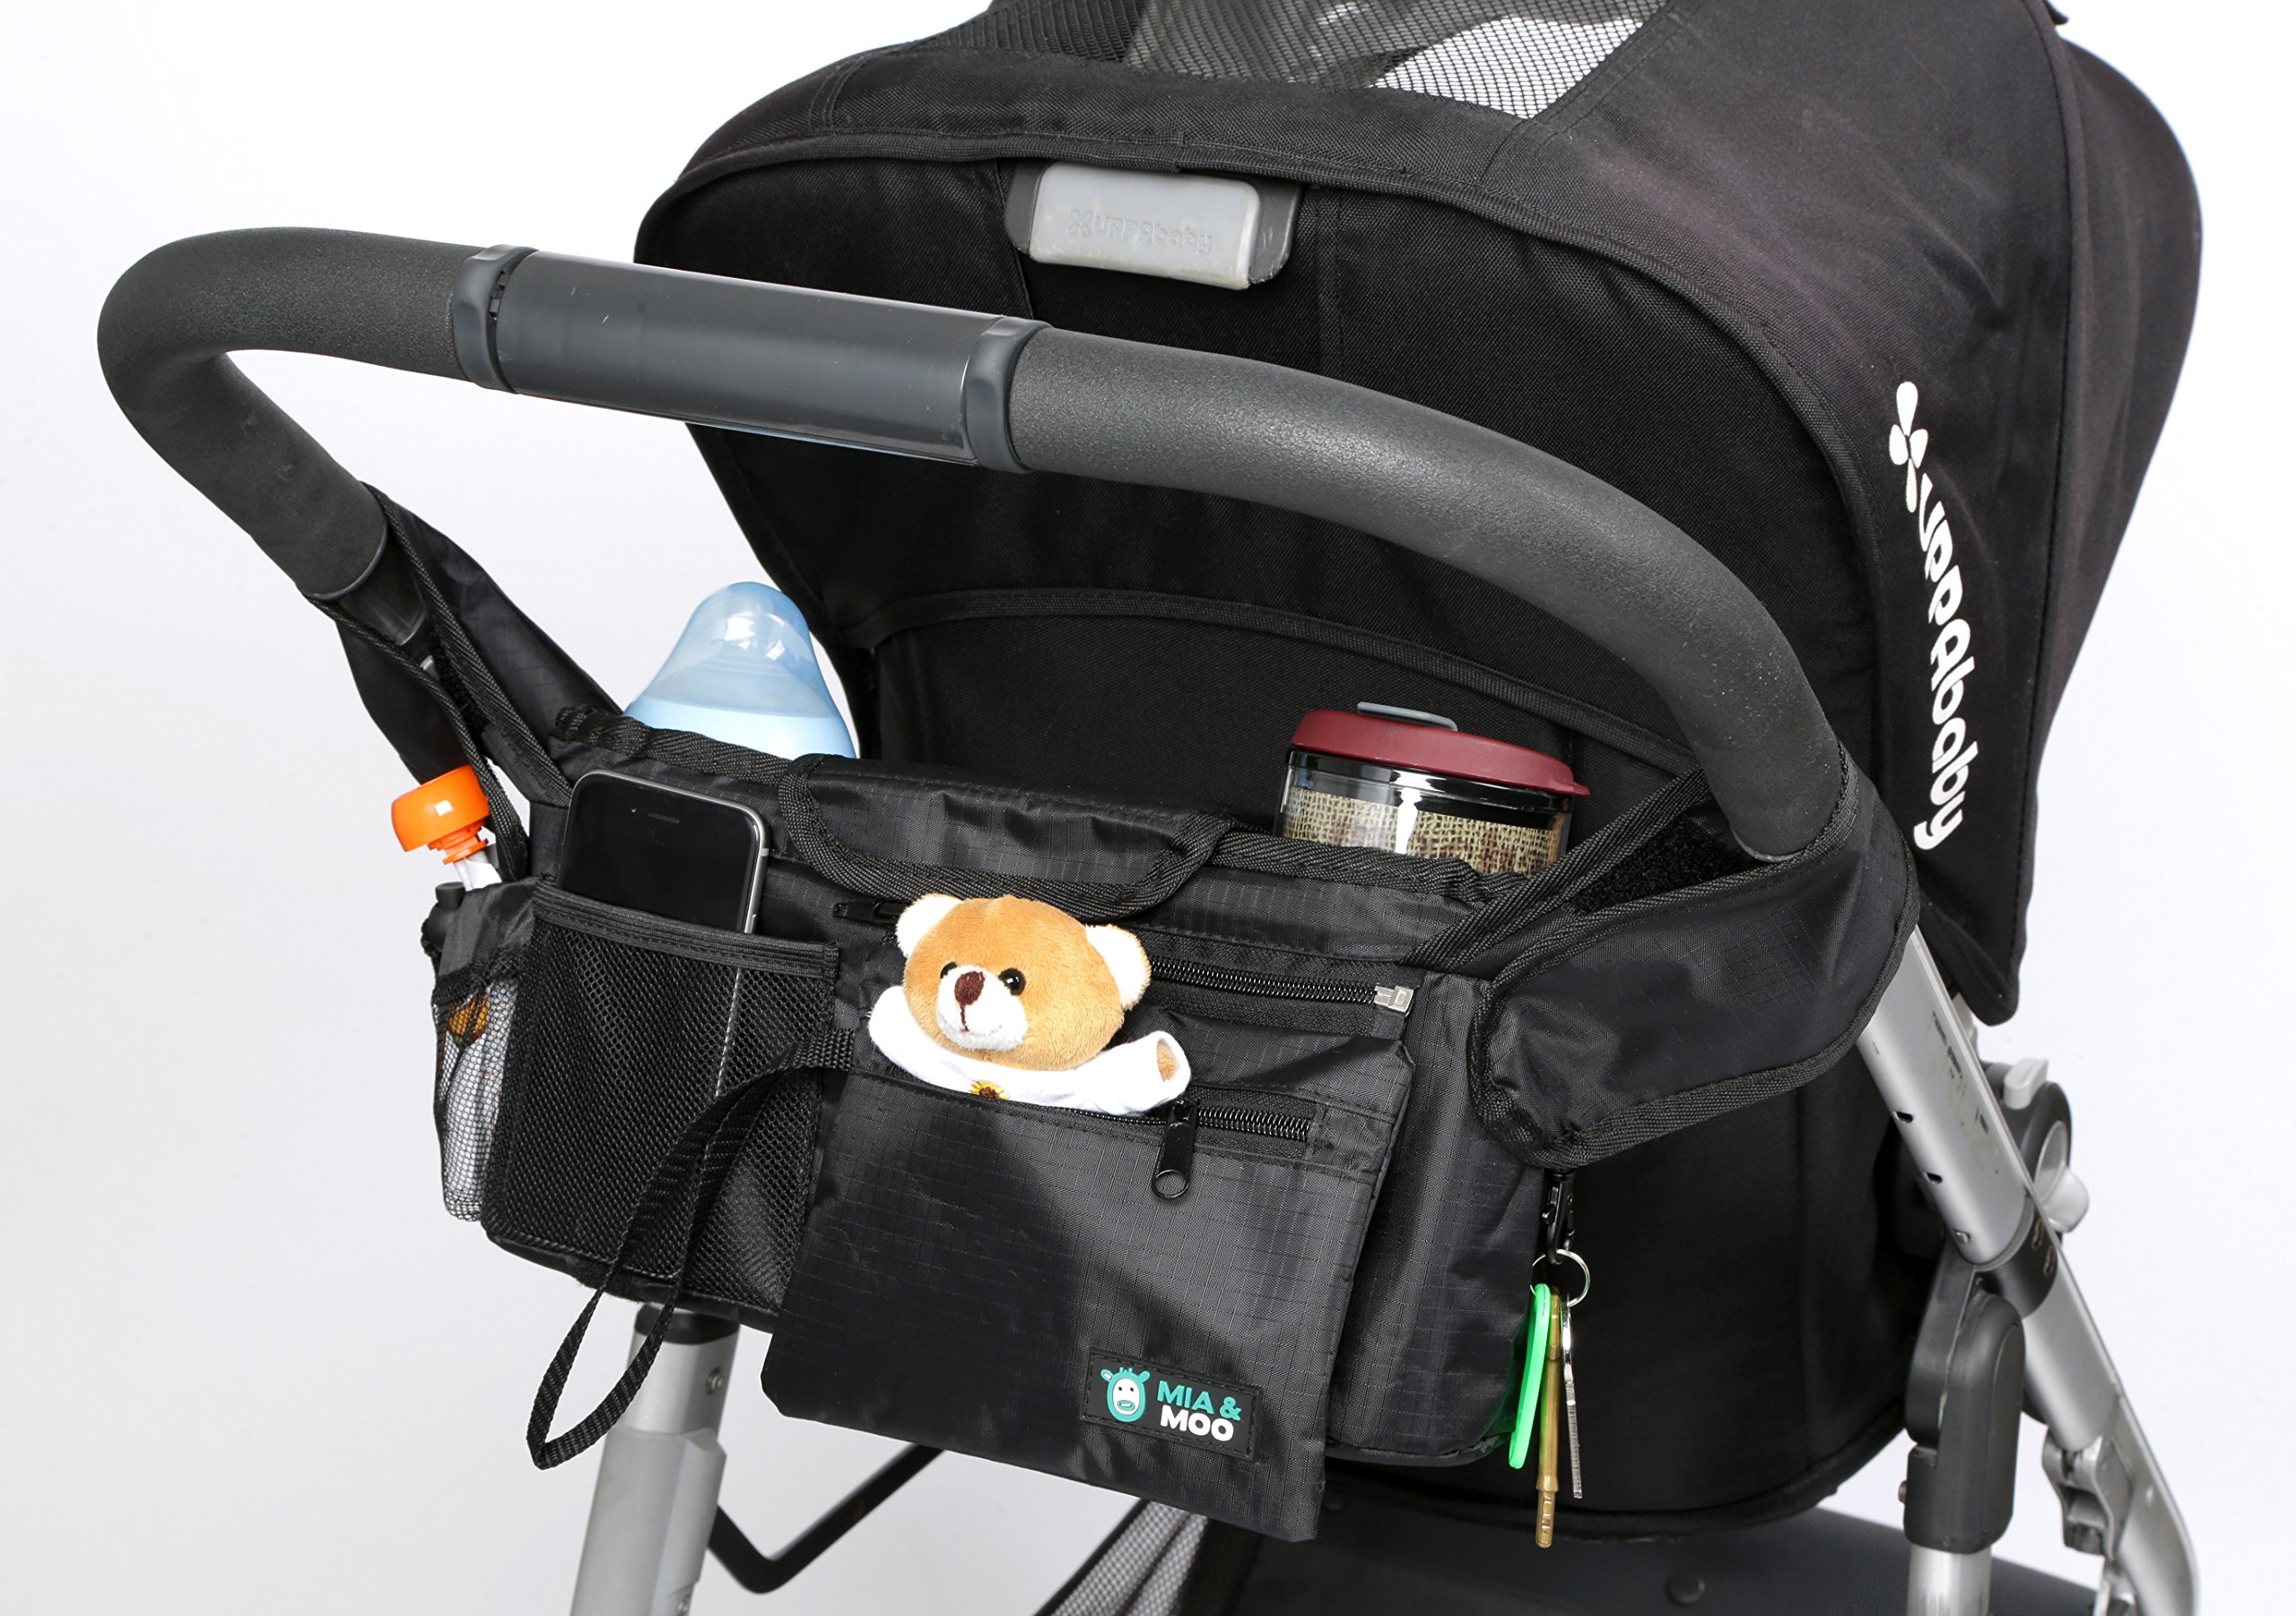 Stroller Organizer Bag Universal Fit - 2 Insulated Cup Holders - Water & Leak Proof - Zip Off Wristlet Wallet For Money and Keys - Perfect for Moms & Dads On The Go